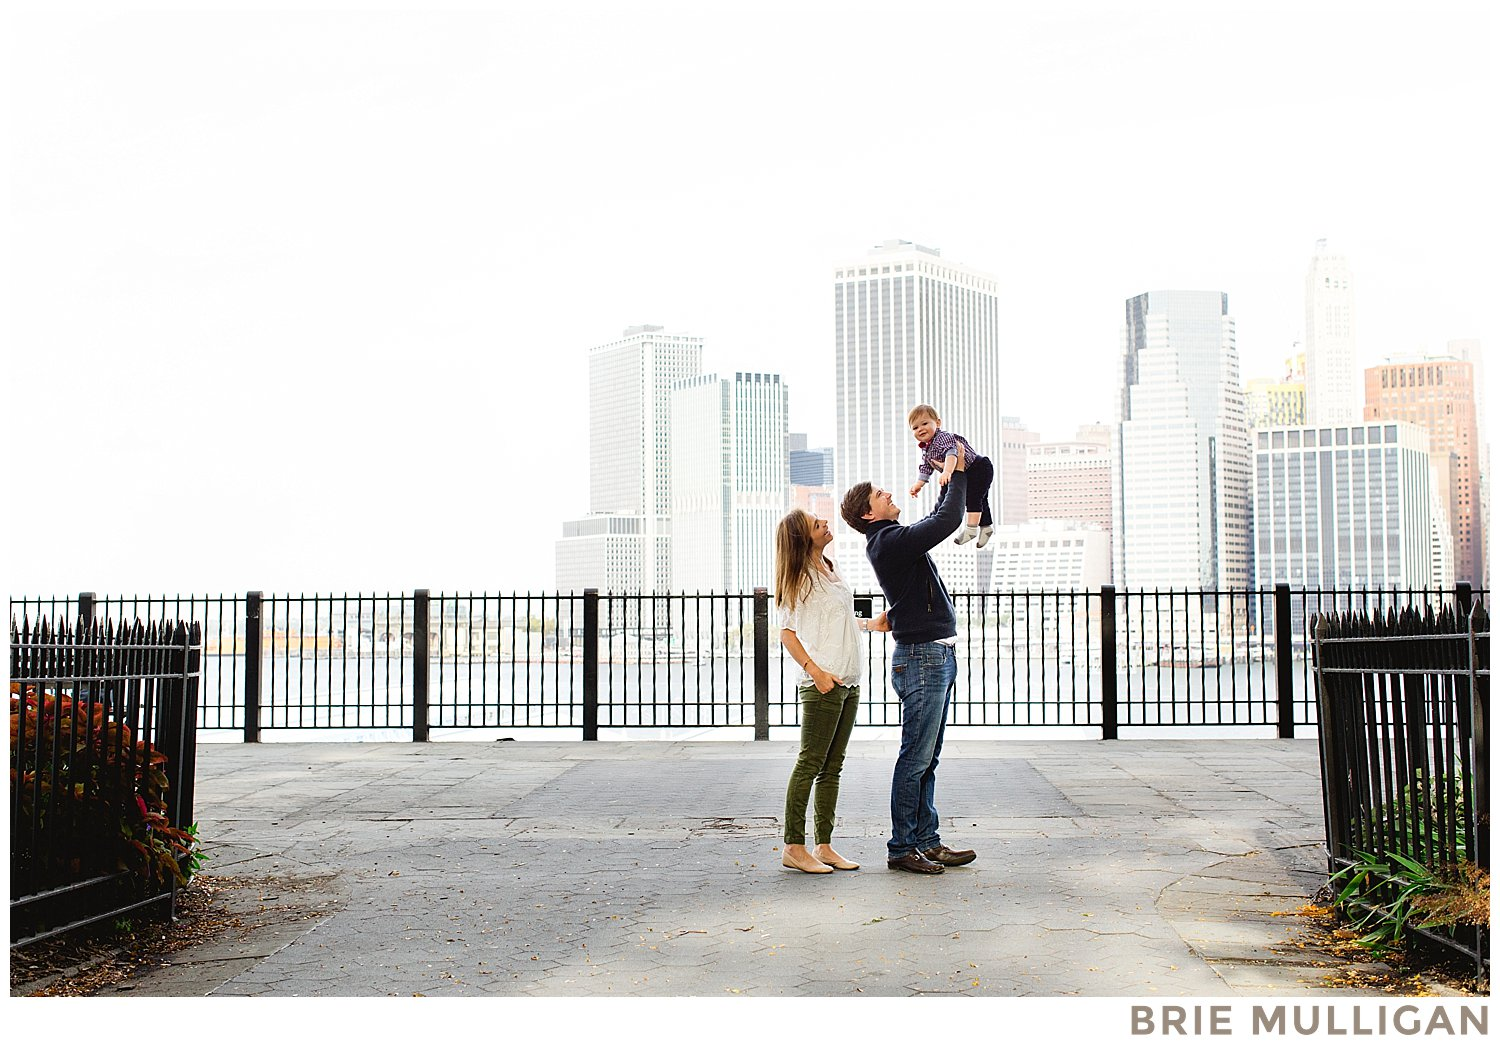 Brie-Mulligan-Family-and-Newborn-Photographer-NYC-and-Northern-NJ_0132.jpg